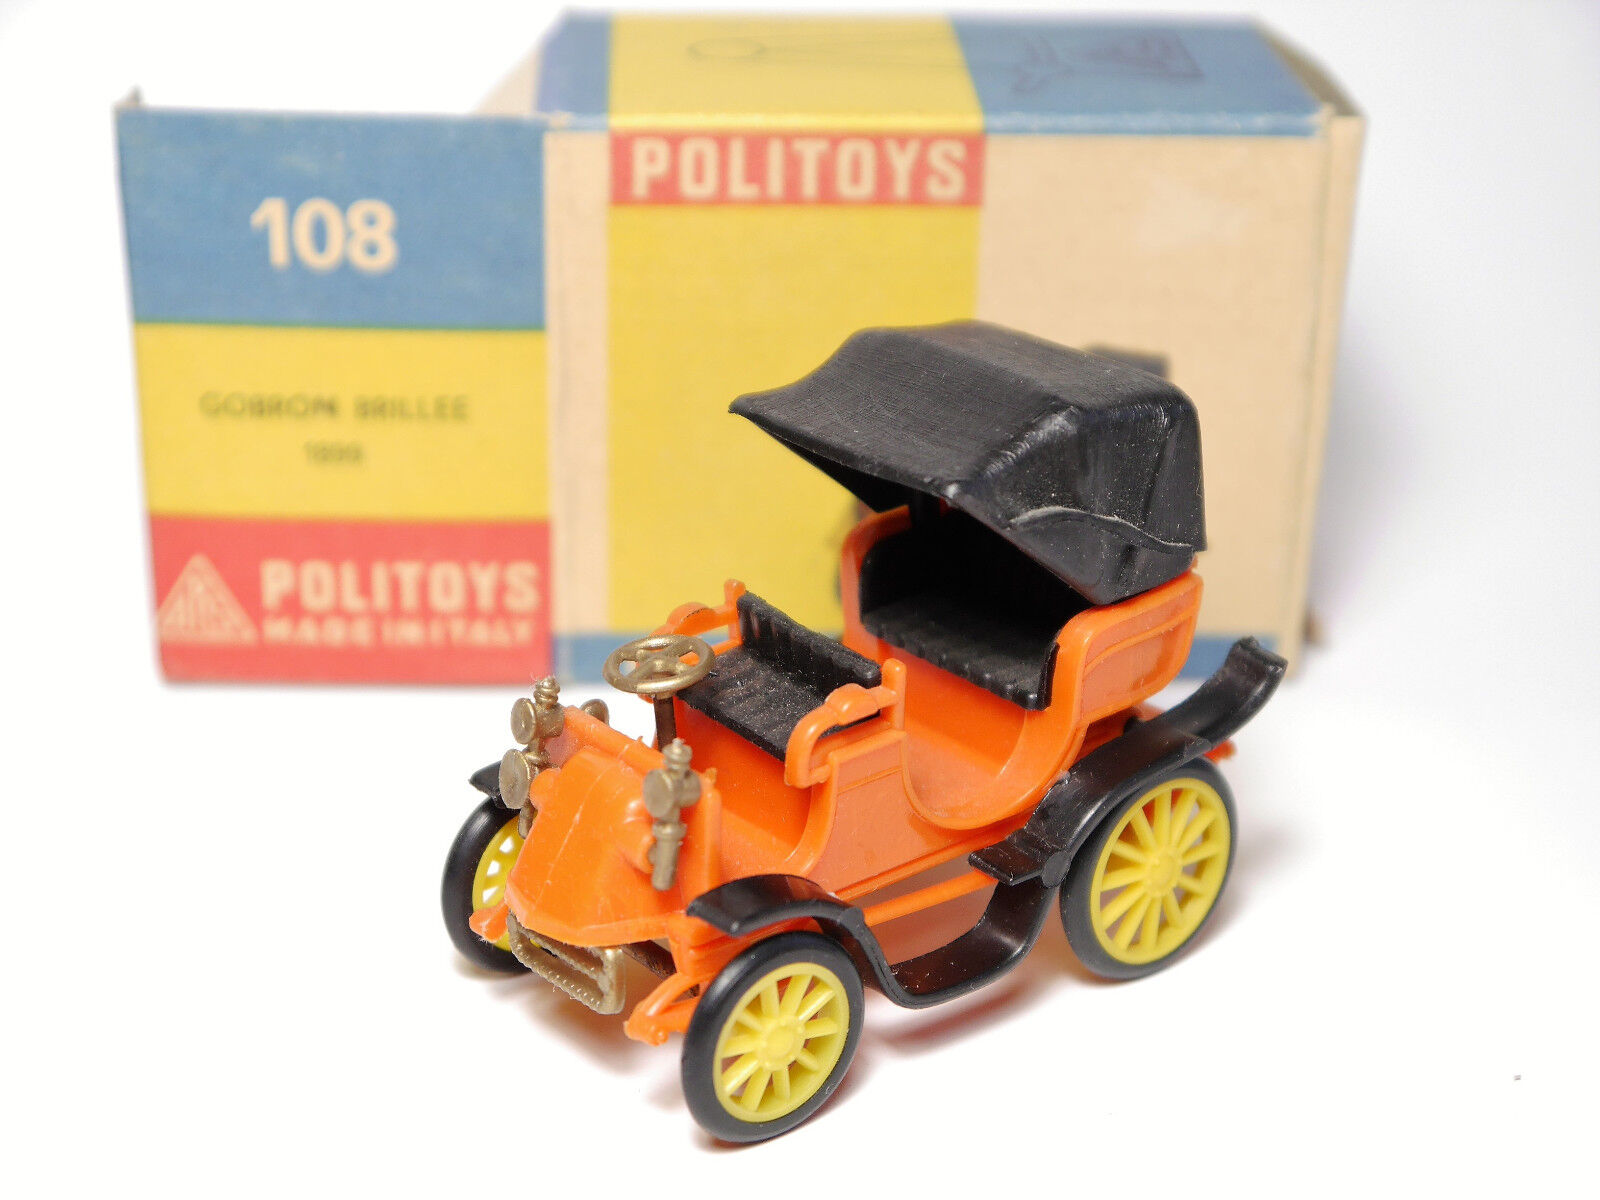 Gobron brillee 1899 in Orange, politoys microminiature   108 13.45 geboxt.